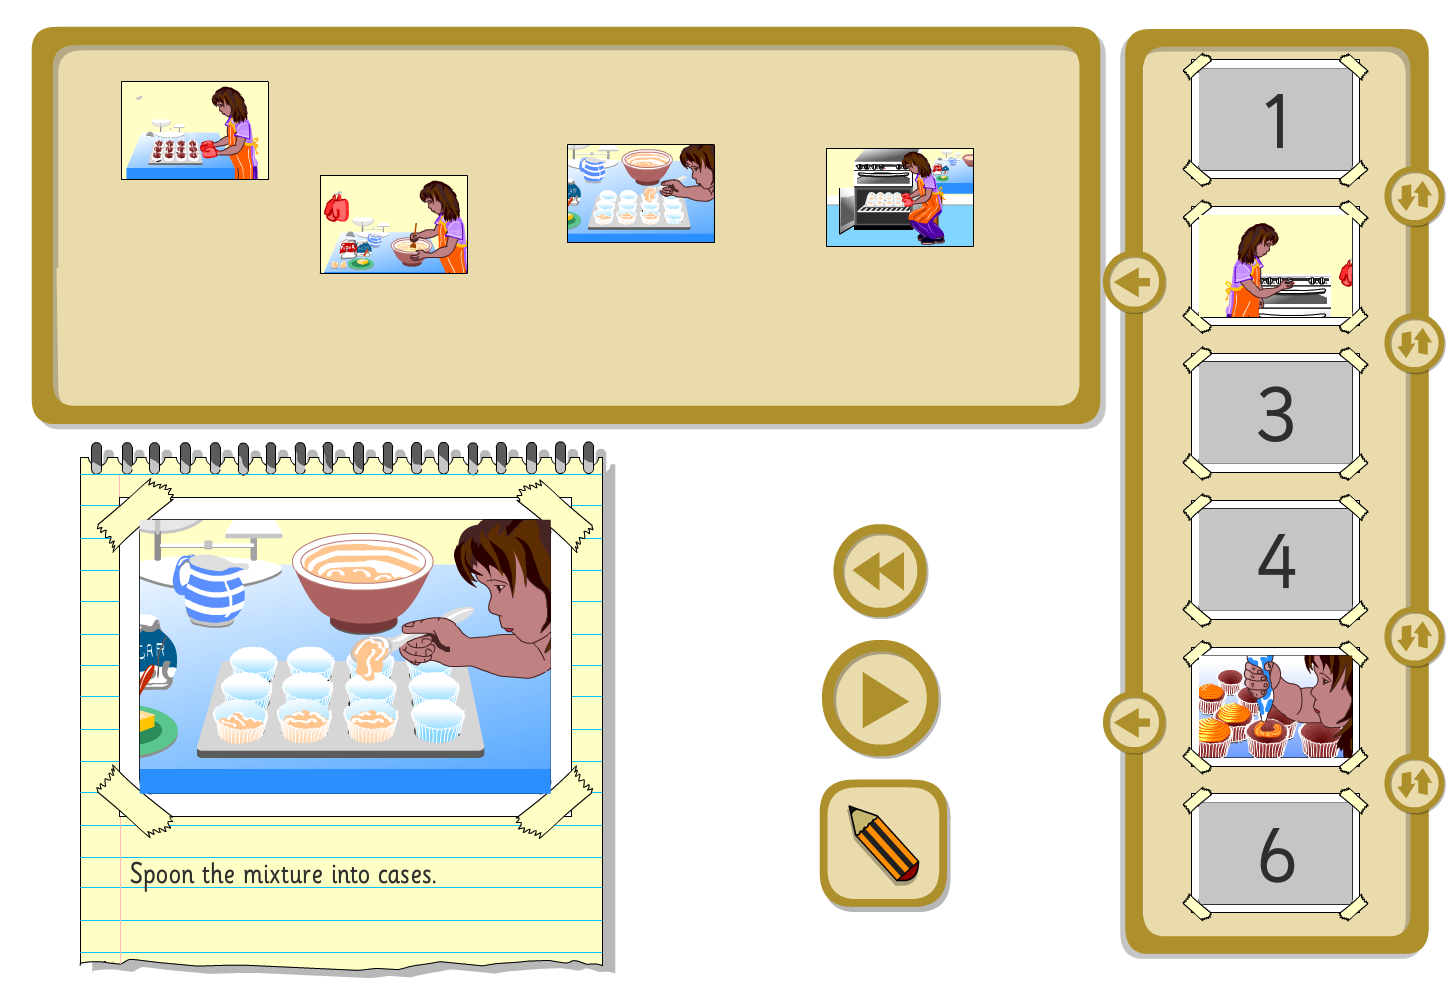 Interactive Sequencer - Making Fairy Cakes - KS1 Literacy